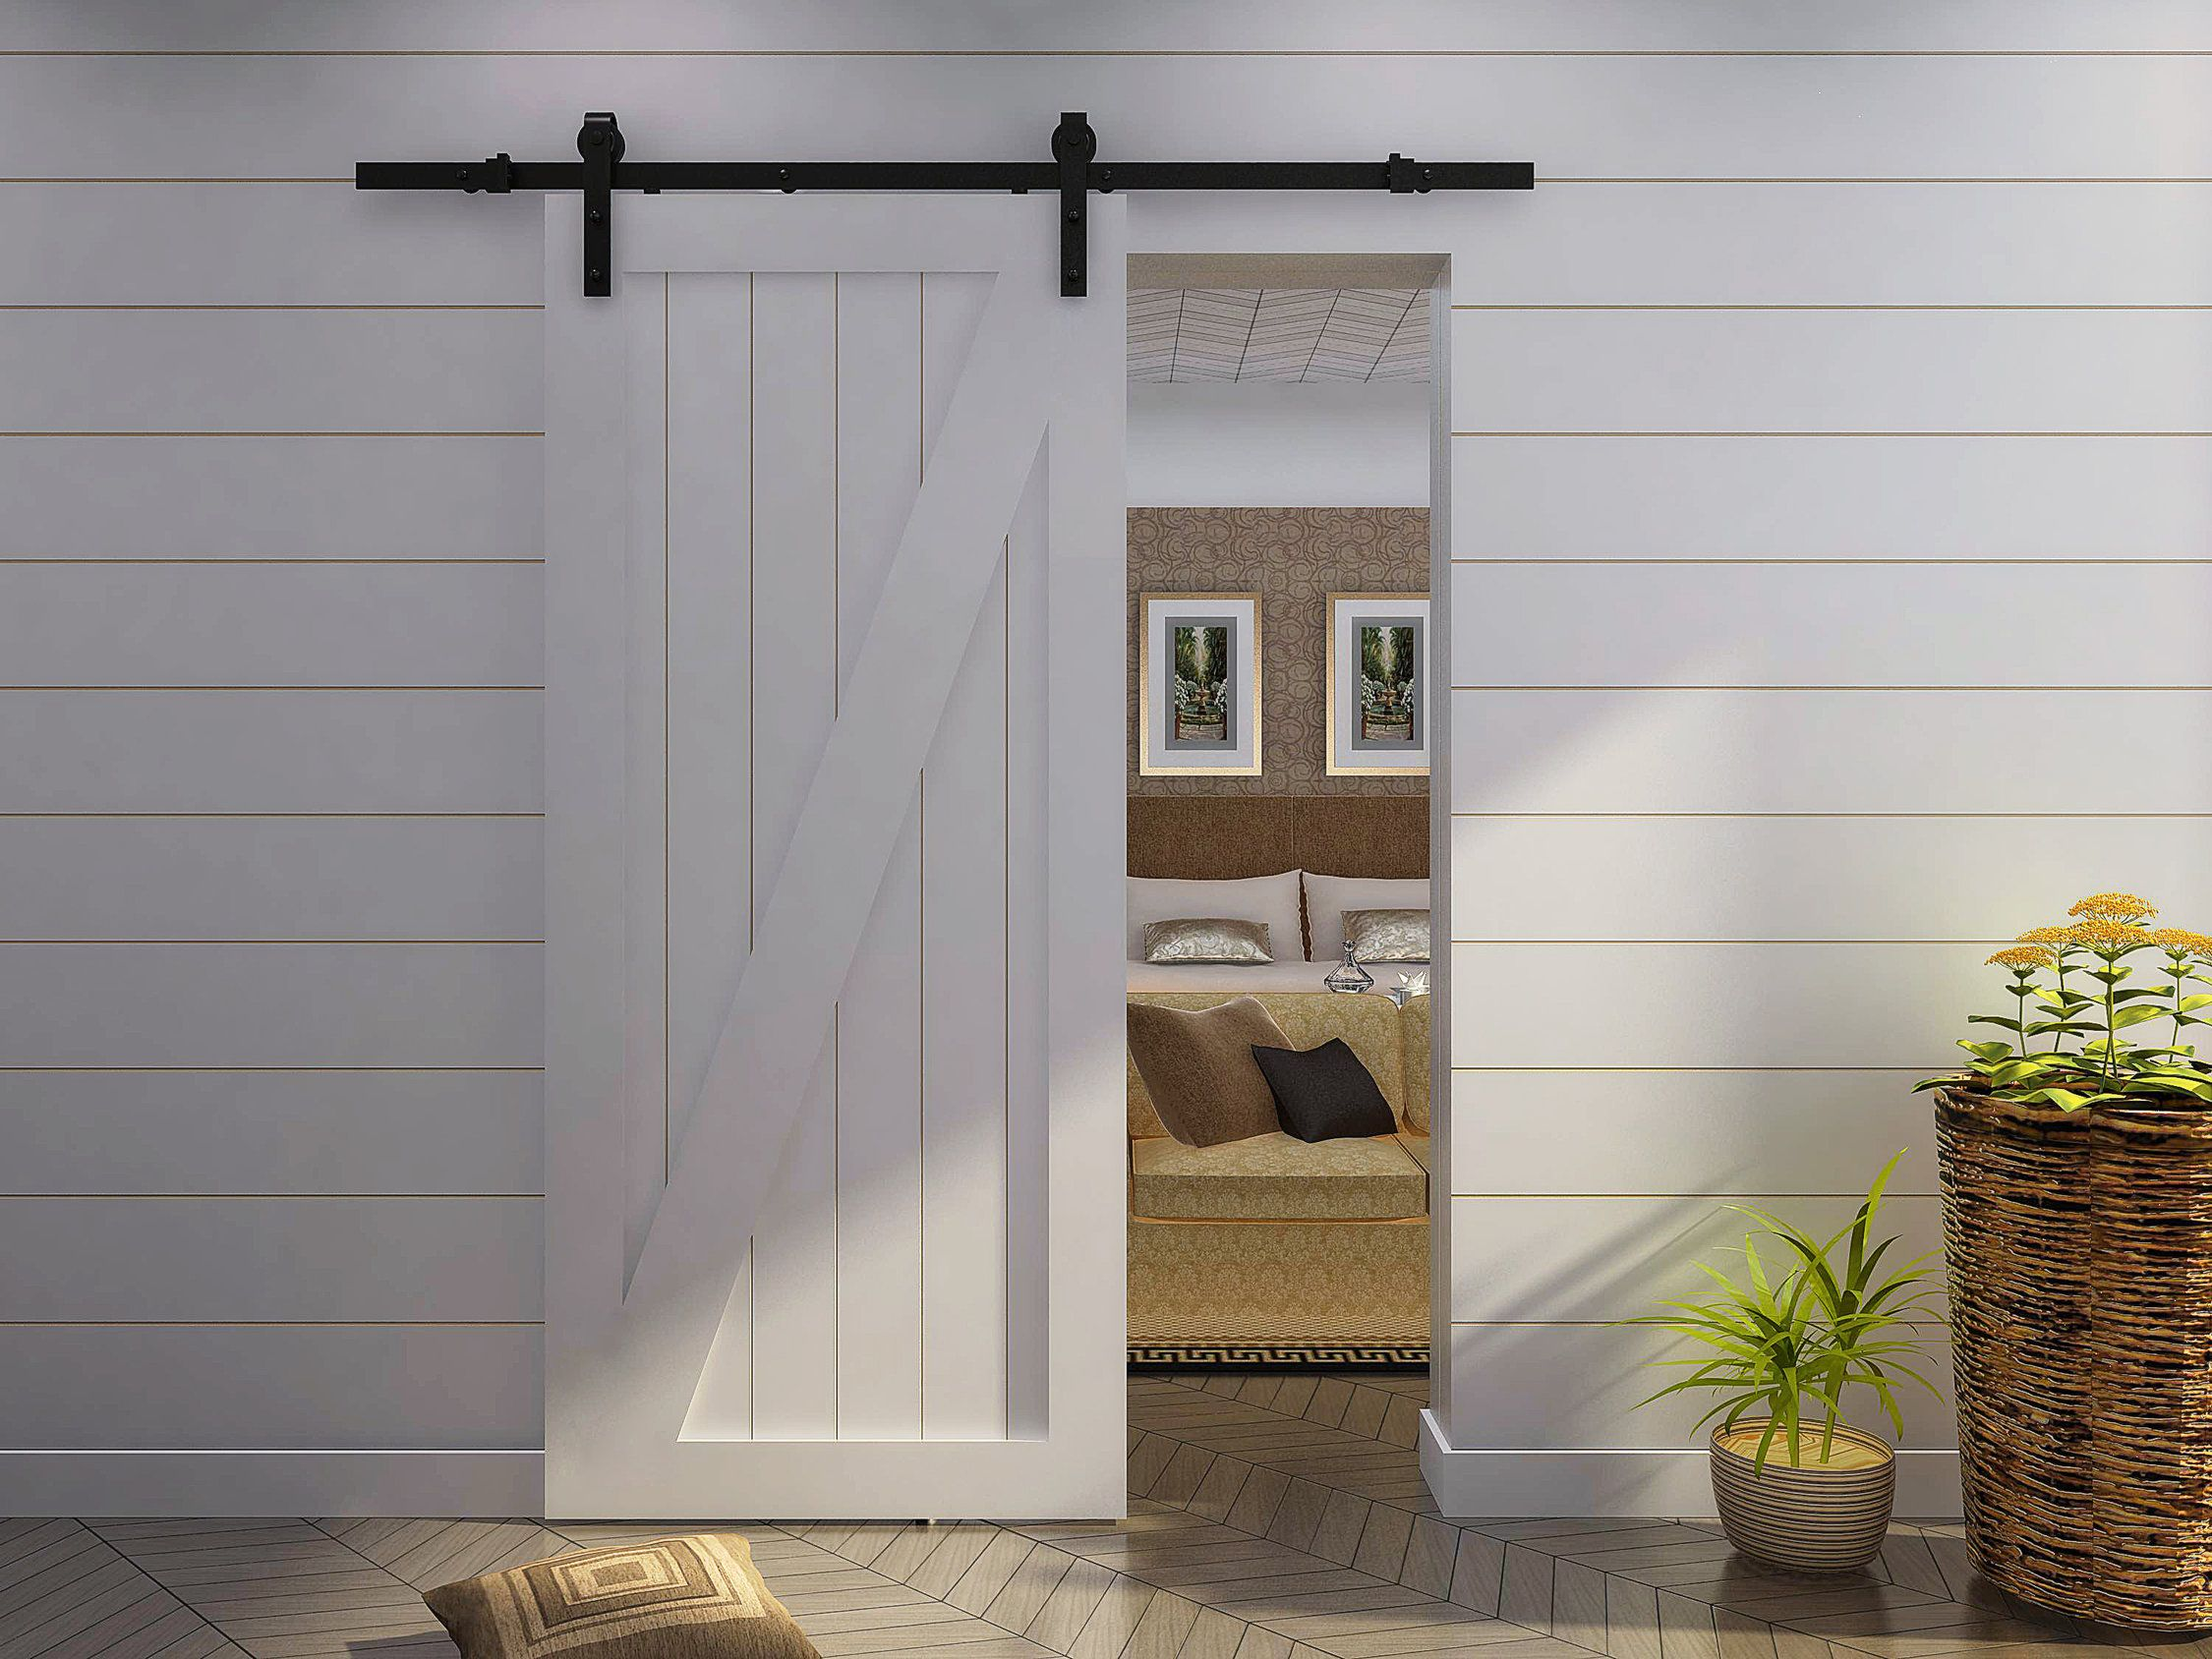 Create Beautiful Space Using Barn Doors Interior: Barndoor Hardware With Barn  Doors Interior For Home